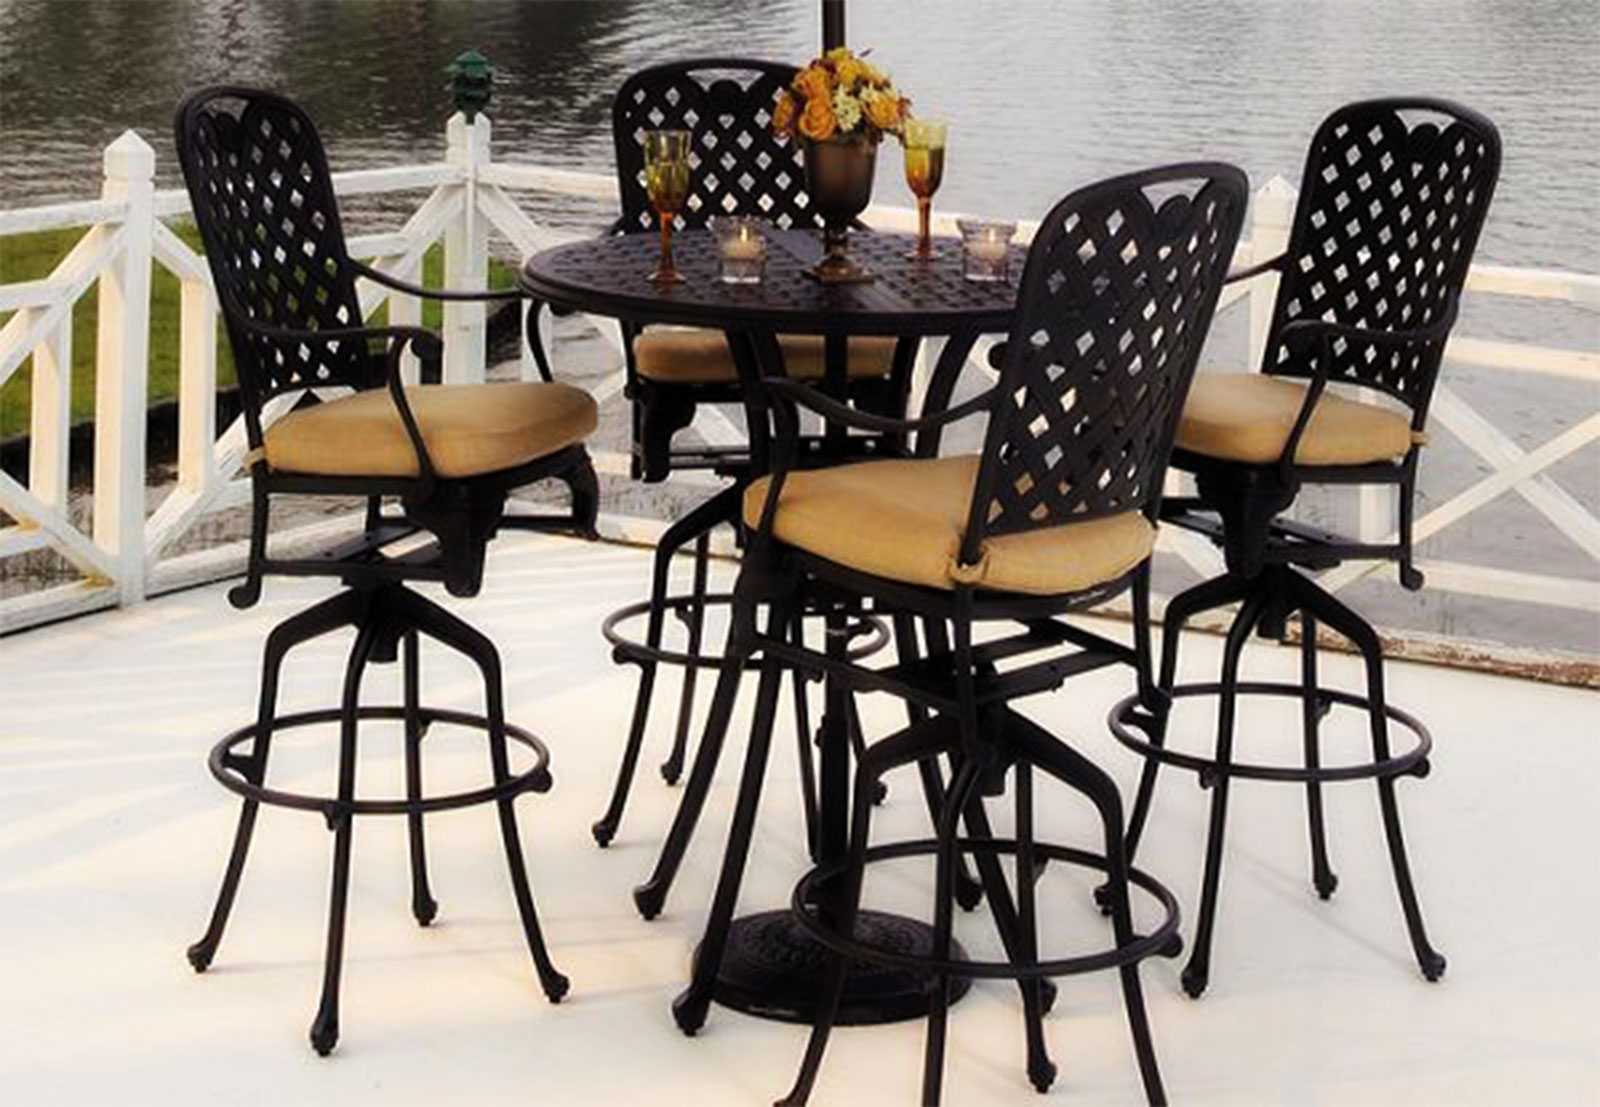 patio bistro table and chairs ergonomic chair back cushion outdoor furniture ideas